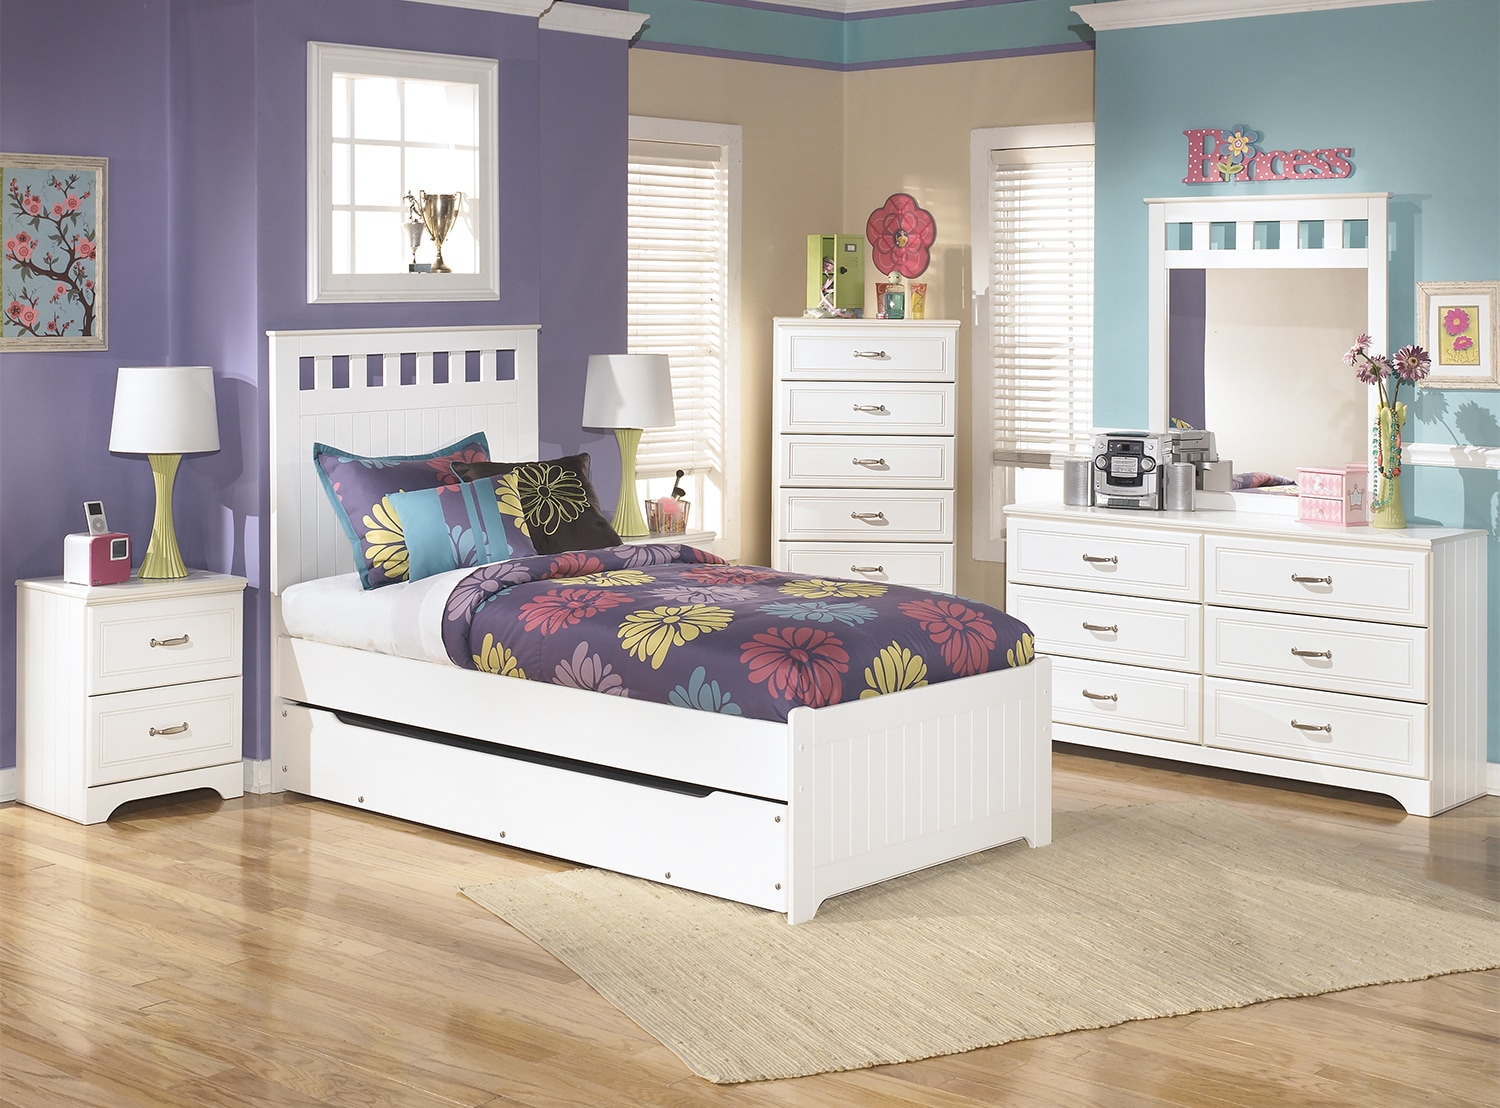 Kids Furniture - Lulu 8-Piece Twin Panel Bed Package with Trundle